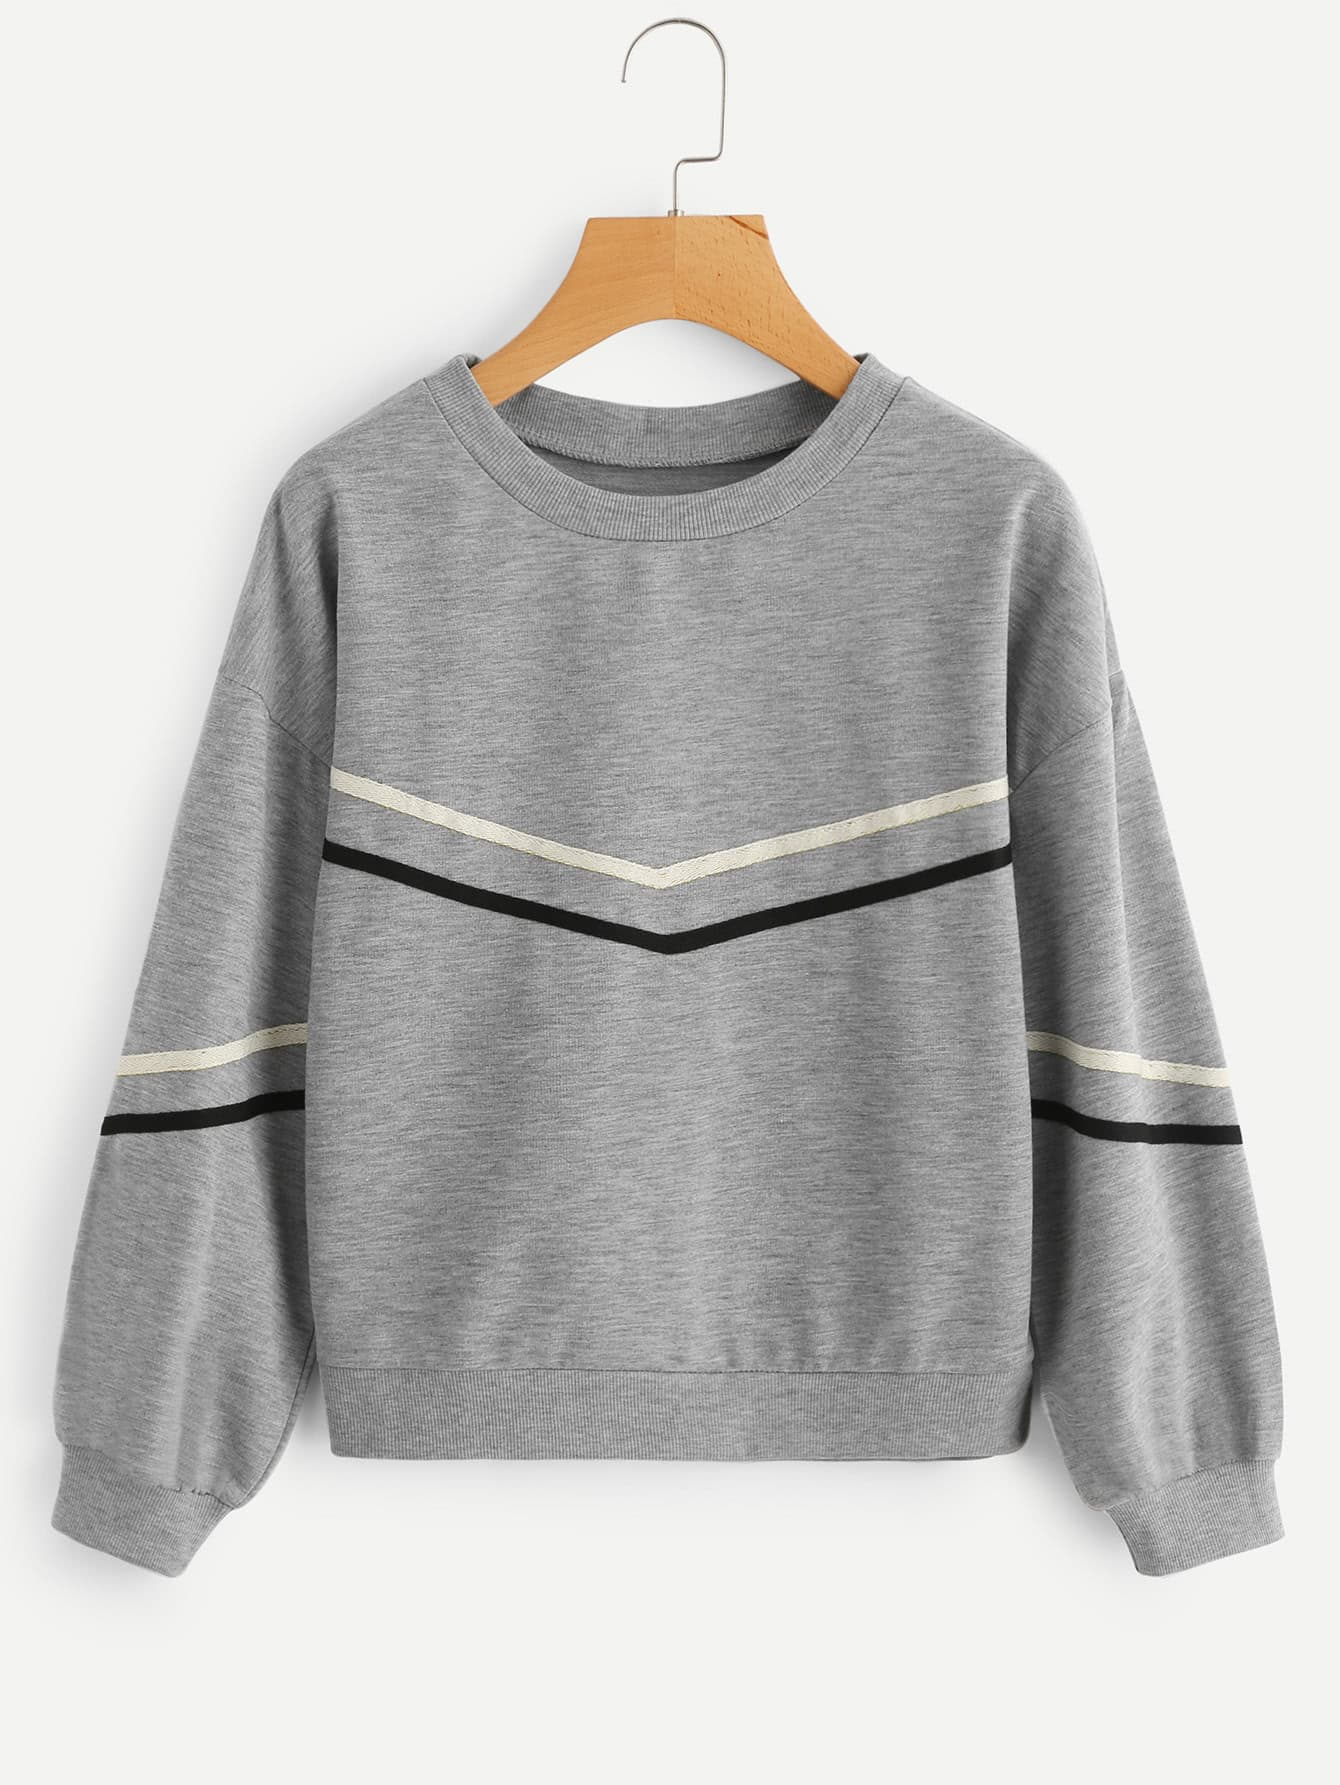 Tape Detail Drop Shoulder Marled Sweatshirt eyes print drop shoulder marled sweatshirt